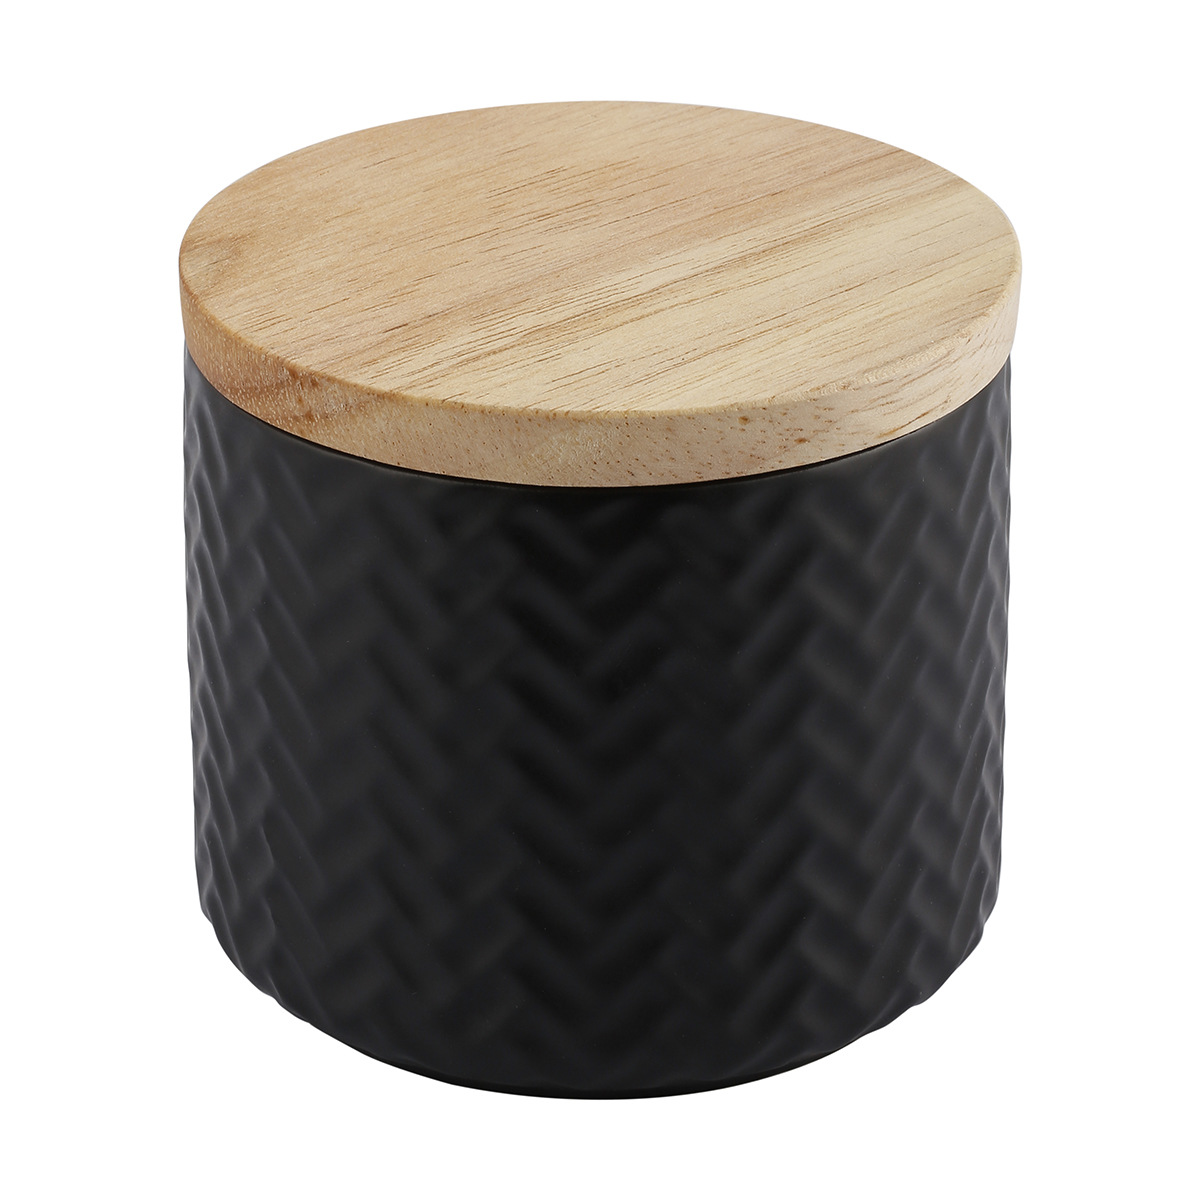 Small Black Embossed Canister Decor, Home decor, Storage